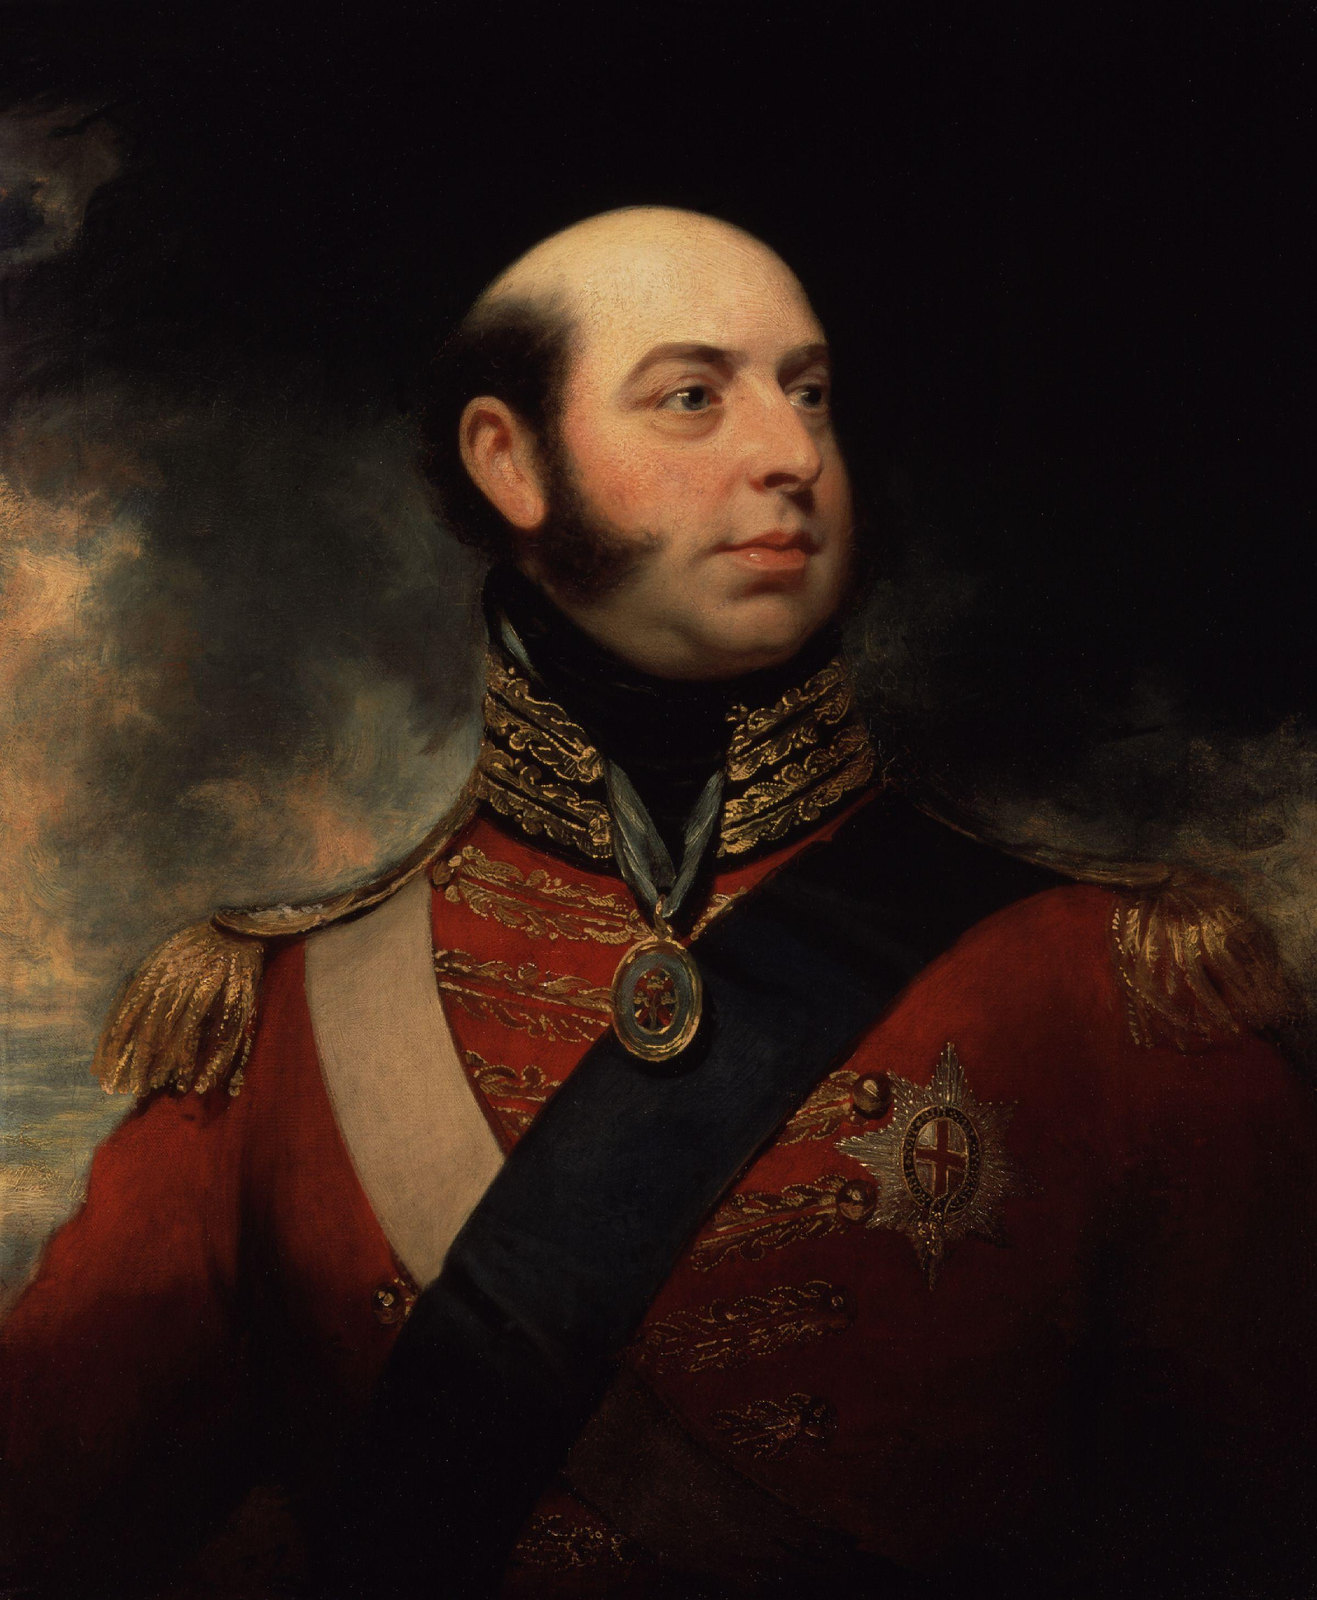 Edward, Duke of Kent and Strathearn bu William Beechey, 1818